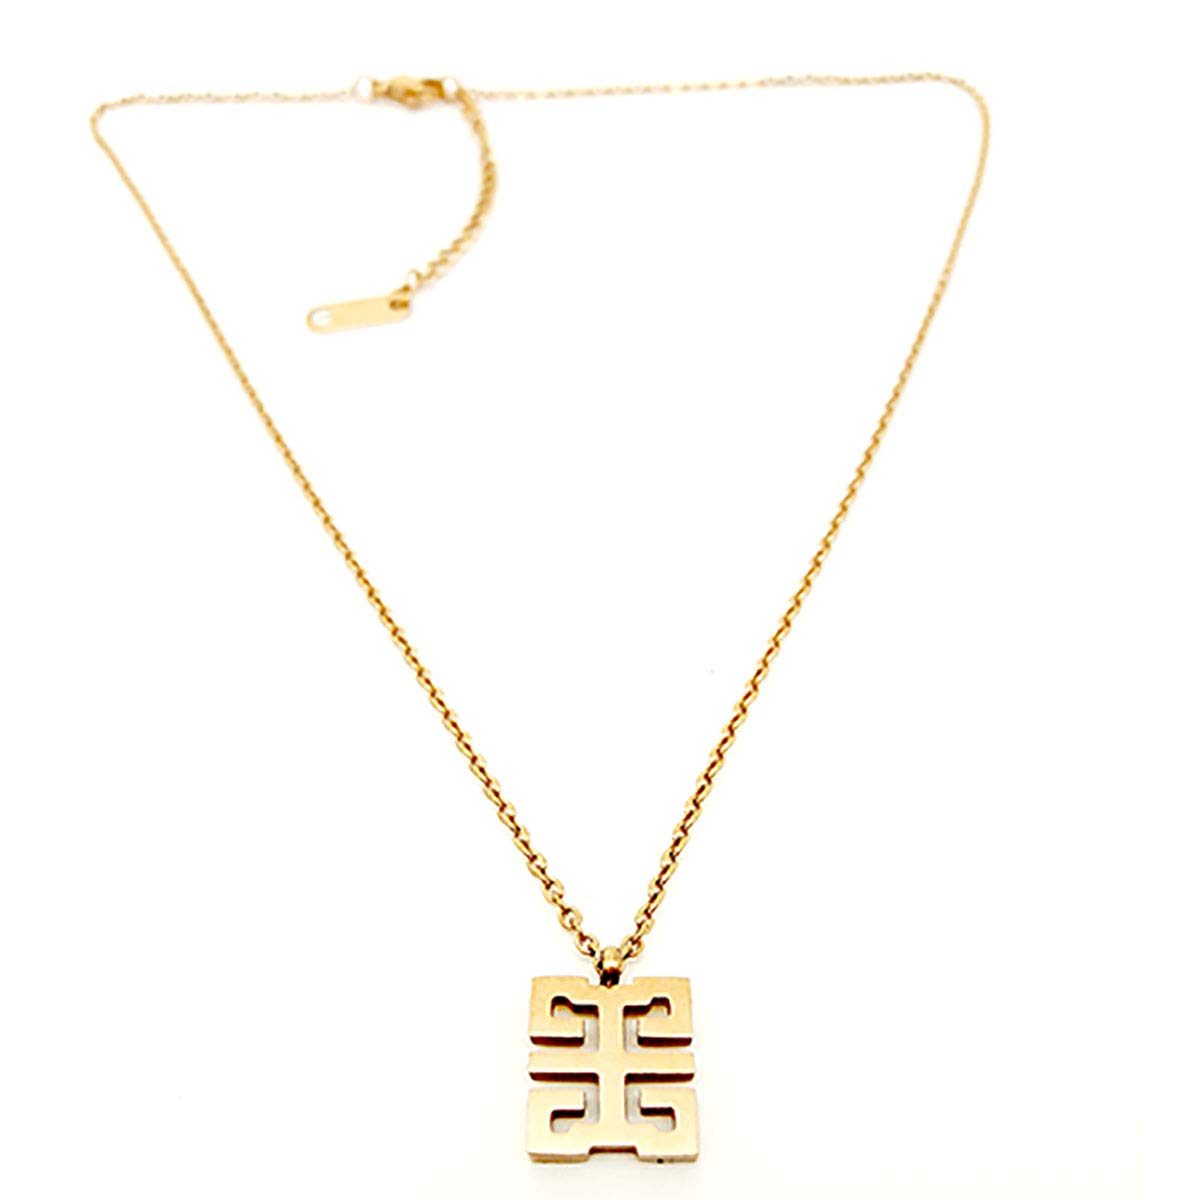 SY-Only Titanium Steel Rose Gold Color Clavicle Necklace with Short Chain